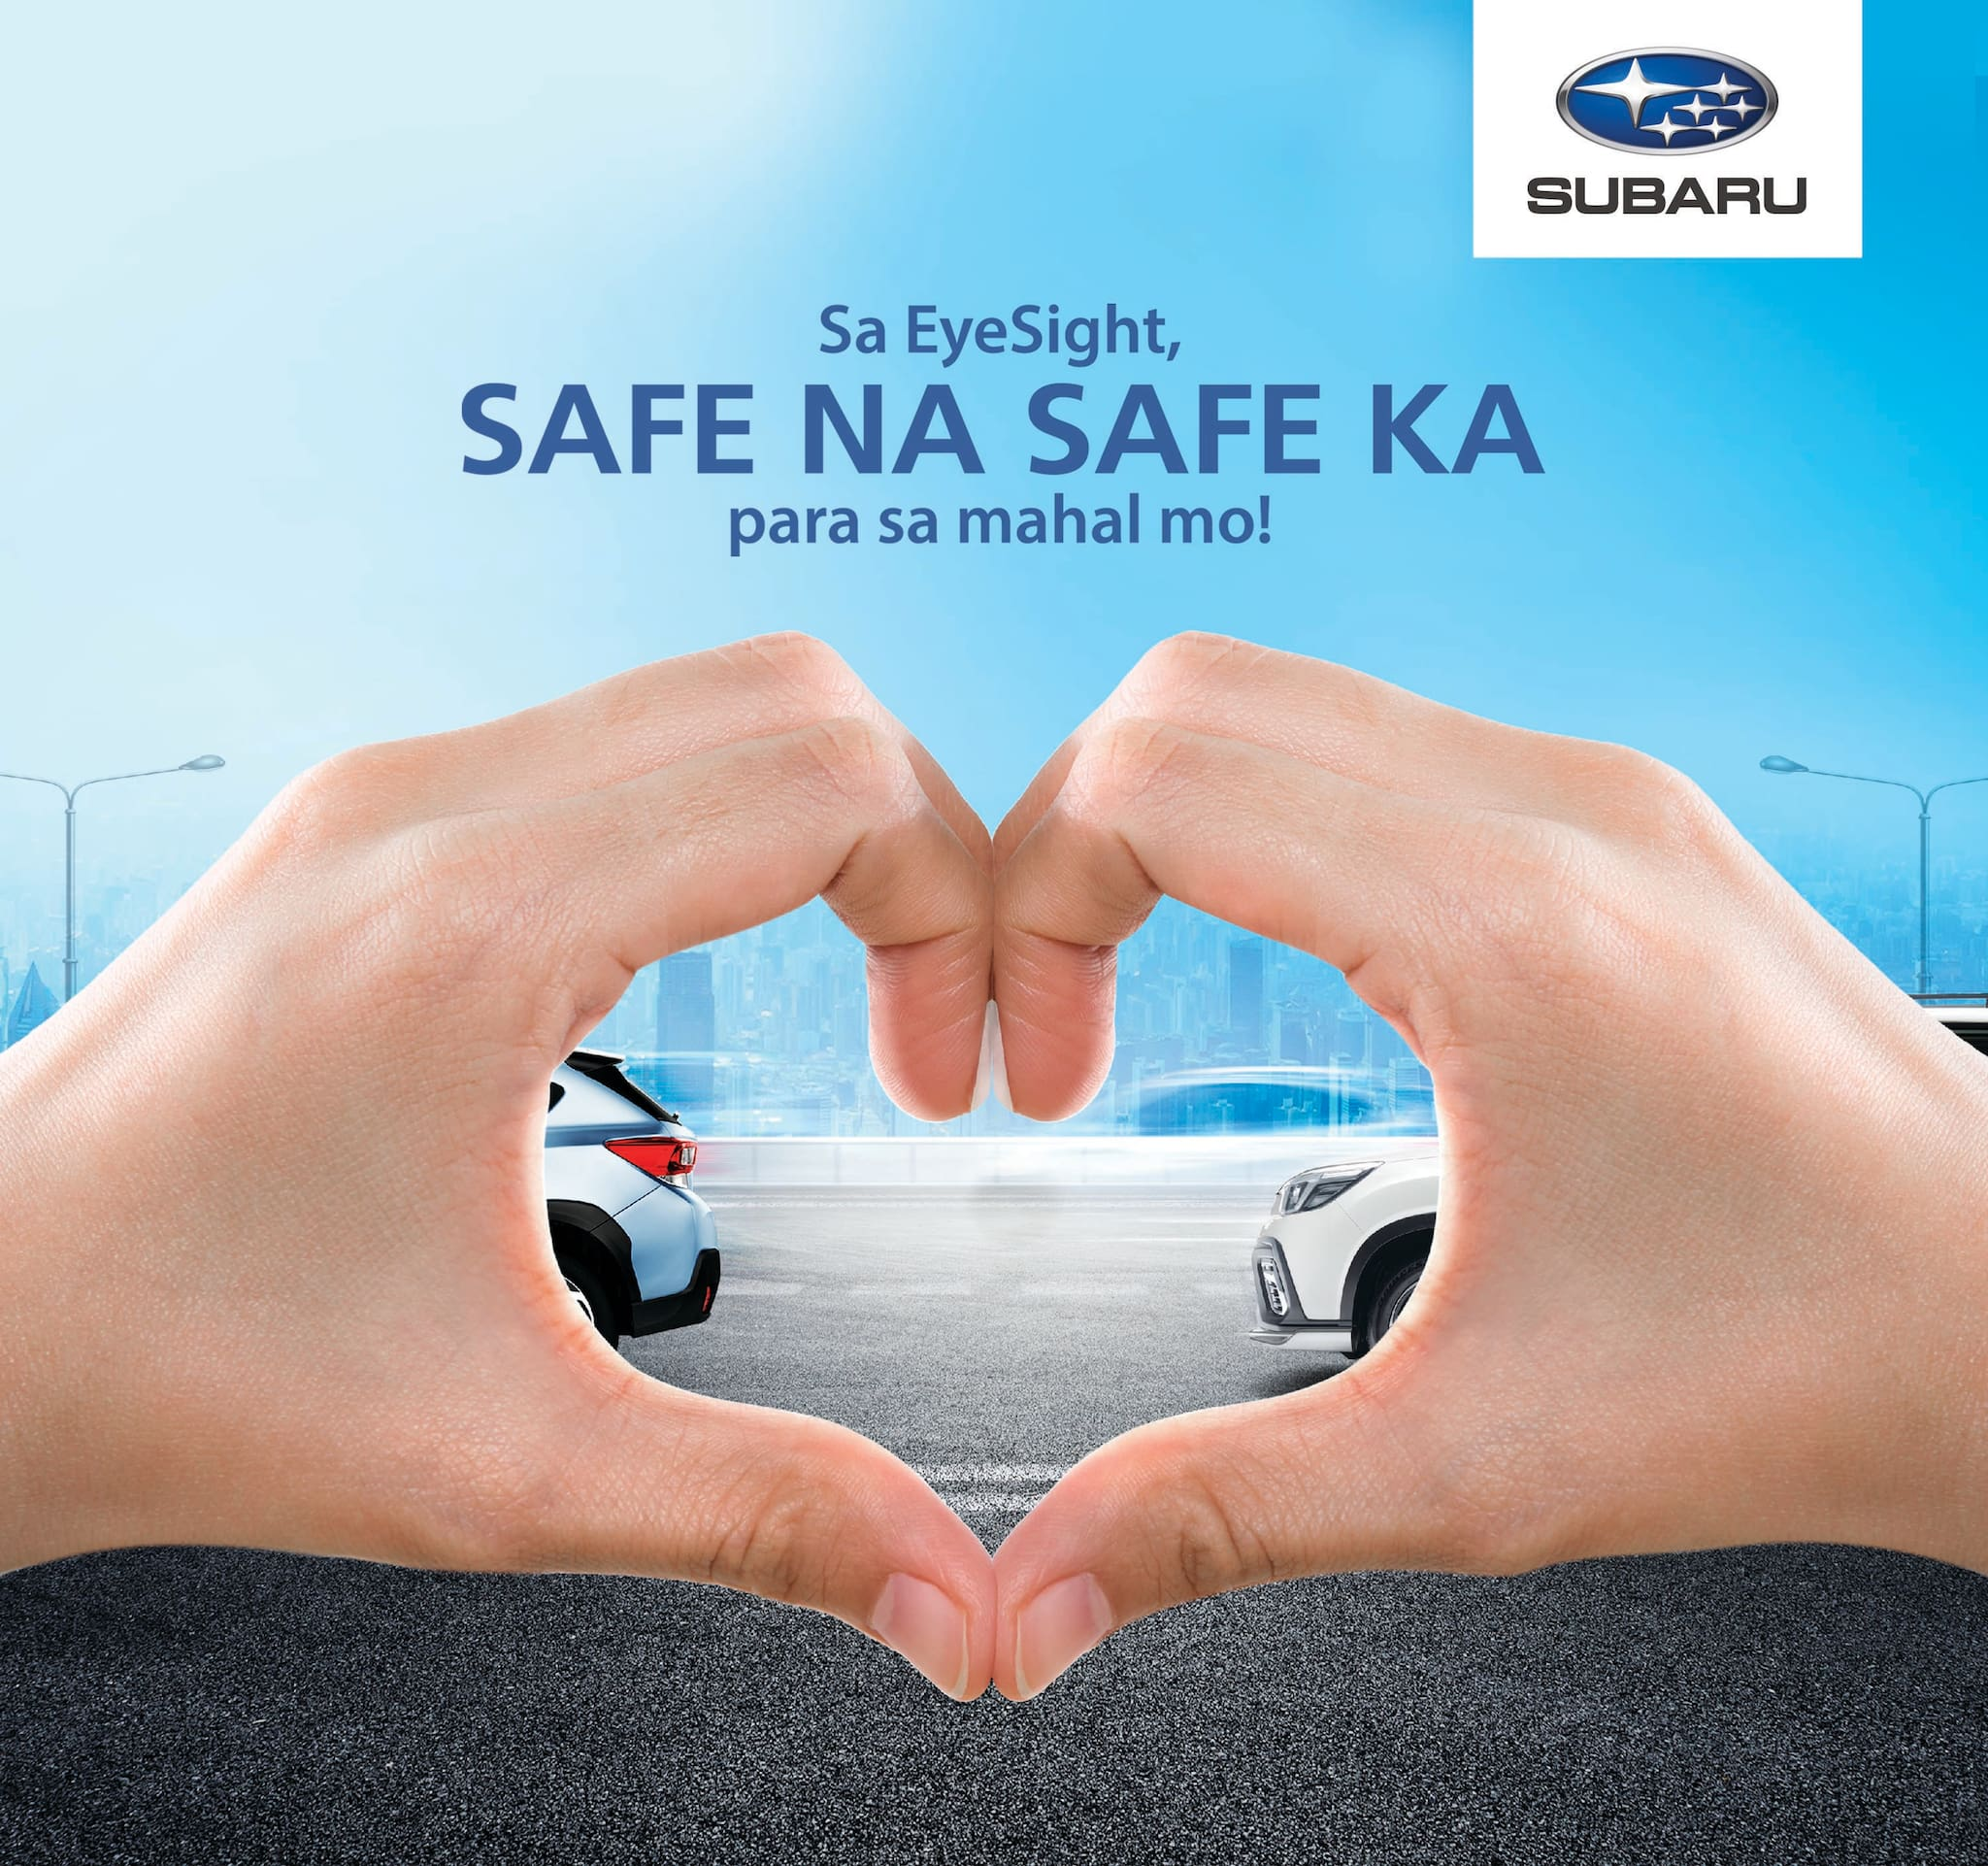 Subaru PH Wants You to Spend Valentine's Day with Them